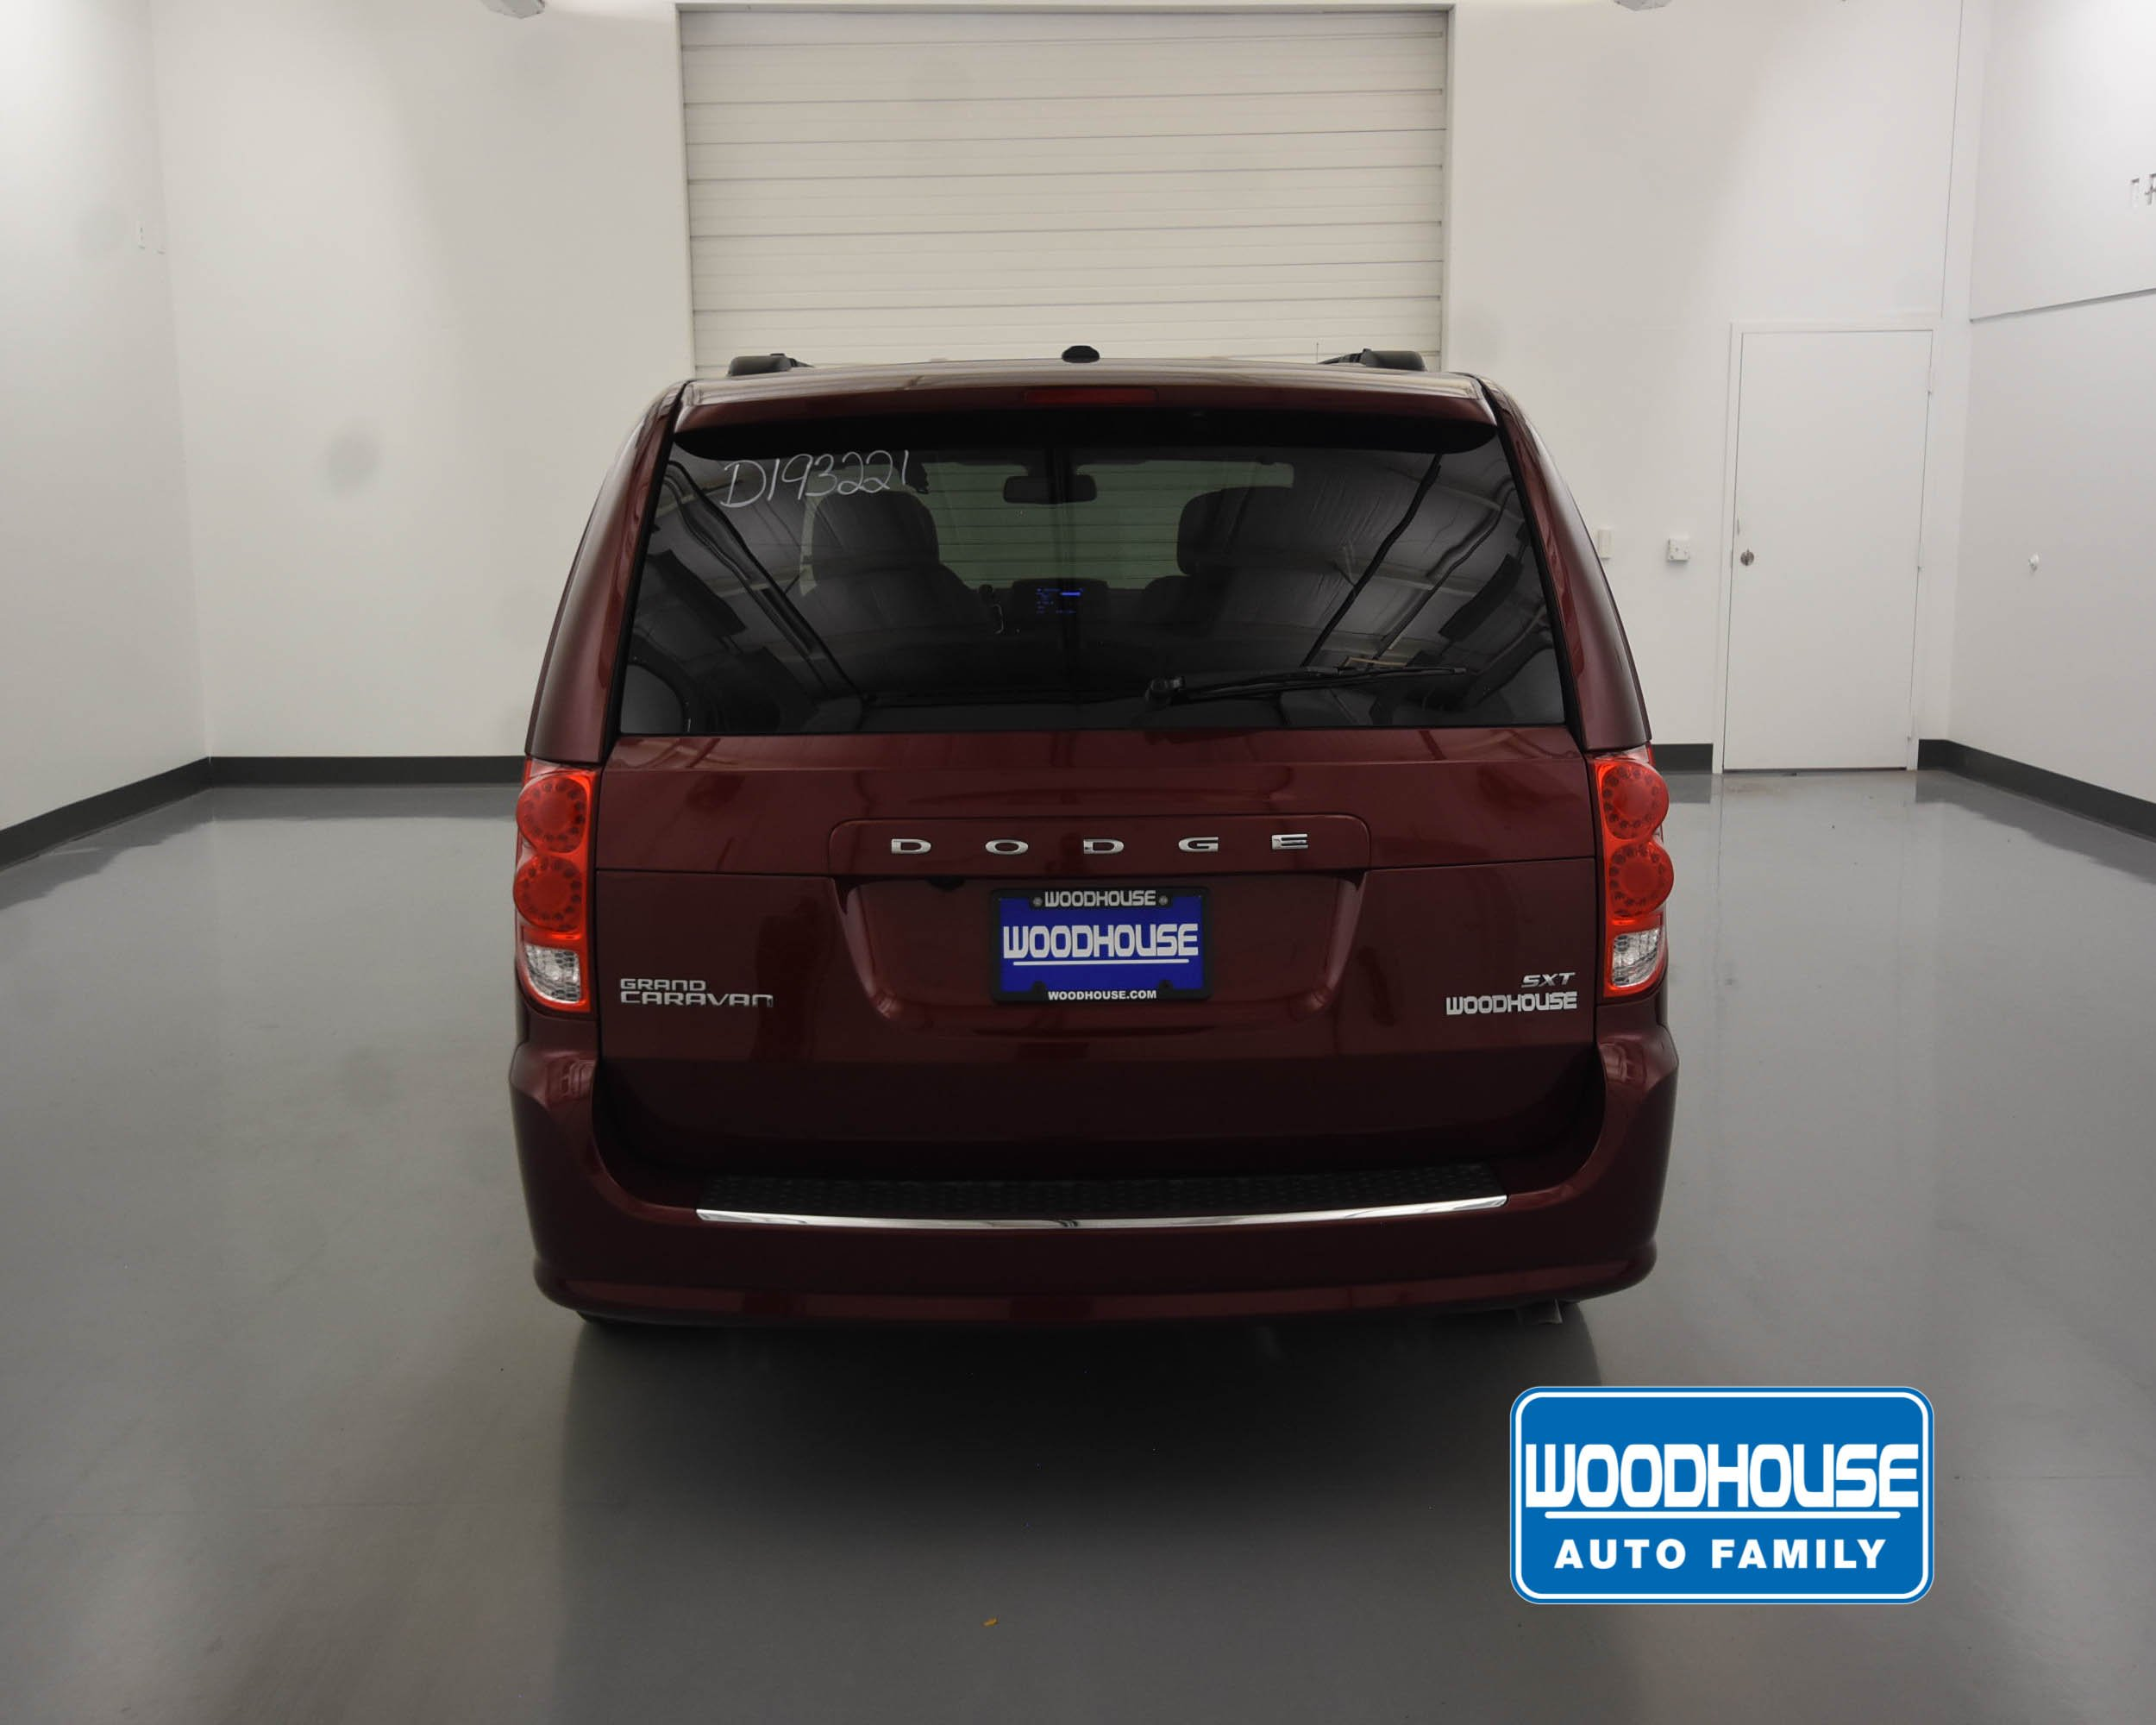 New 2019 DODGE Grand Caravan SXT 35th Anniversary Edition